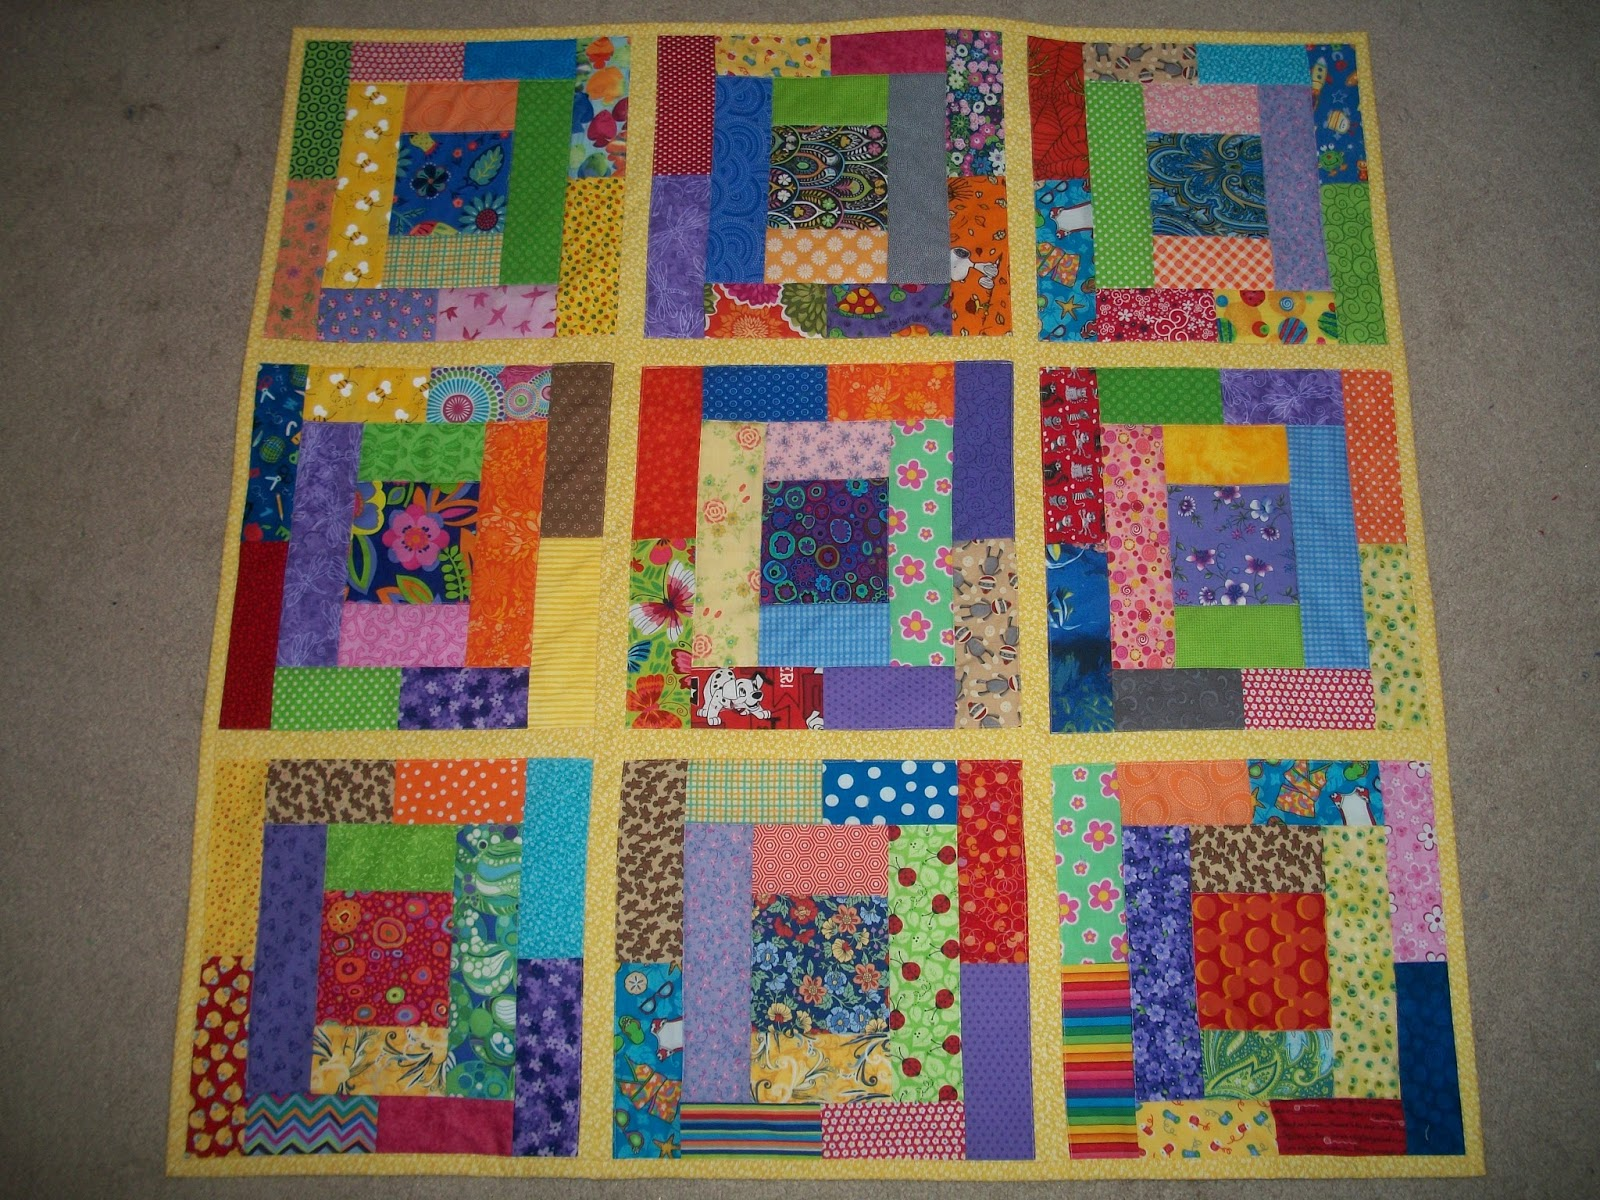 Sew Cook and Travel: 2018 RSC January Light Blue, RSC 16-Patch Quilt ...